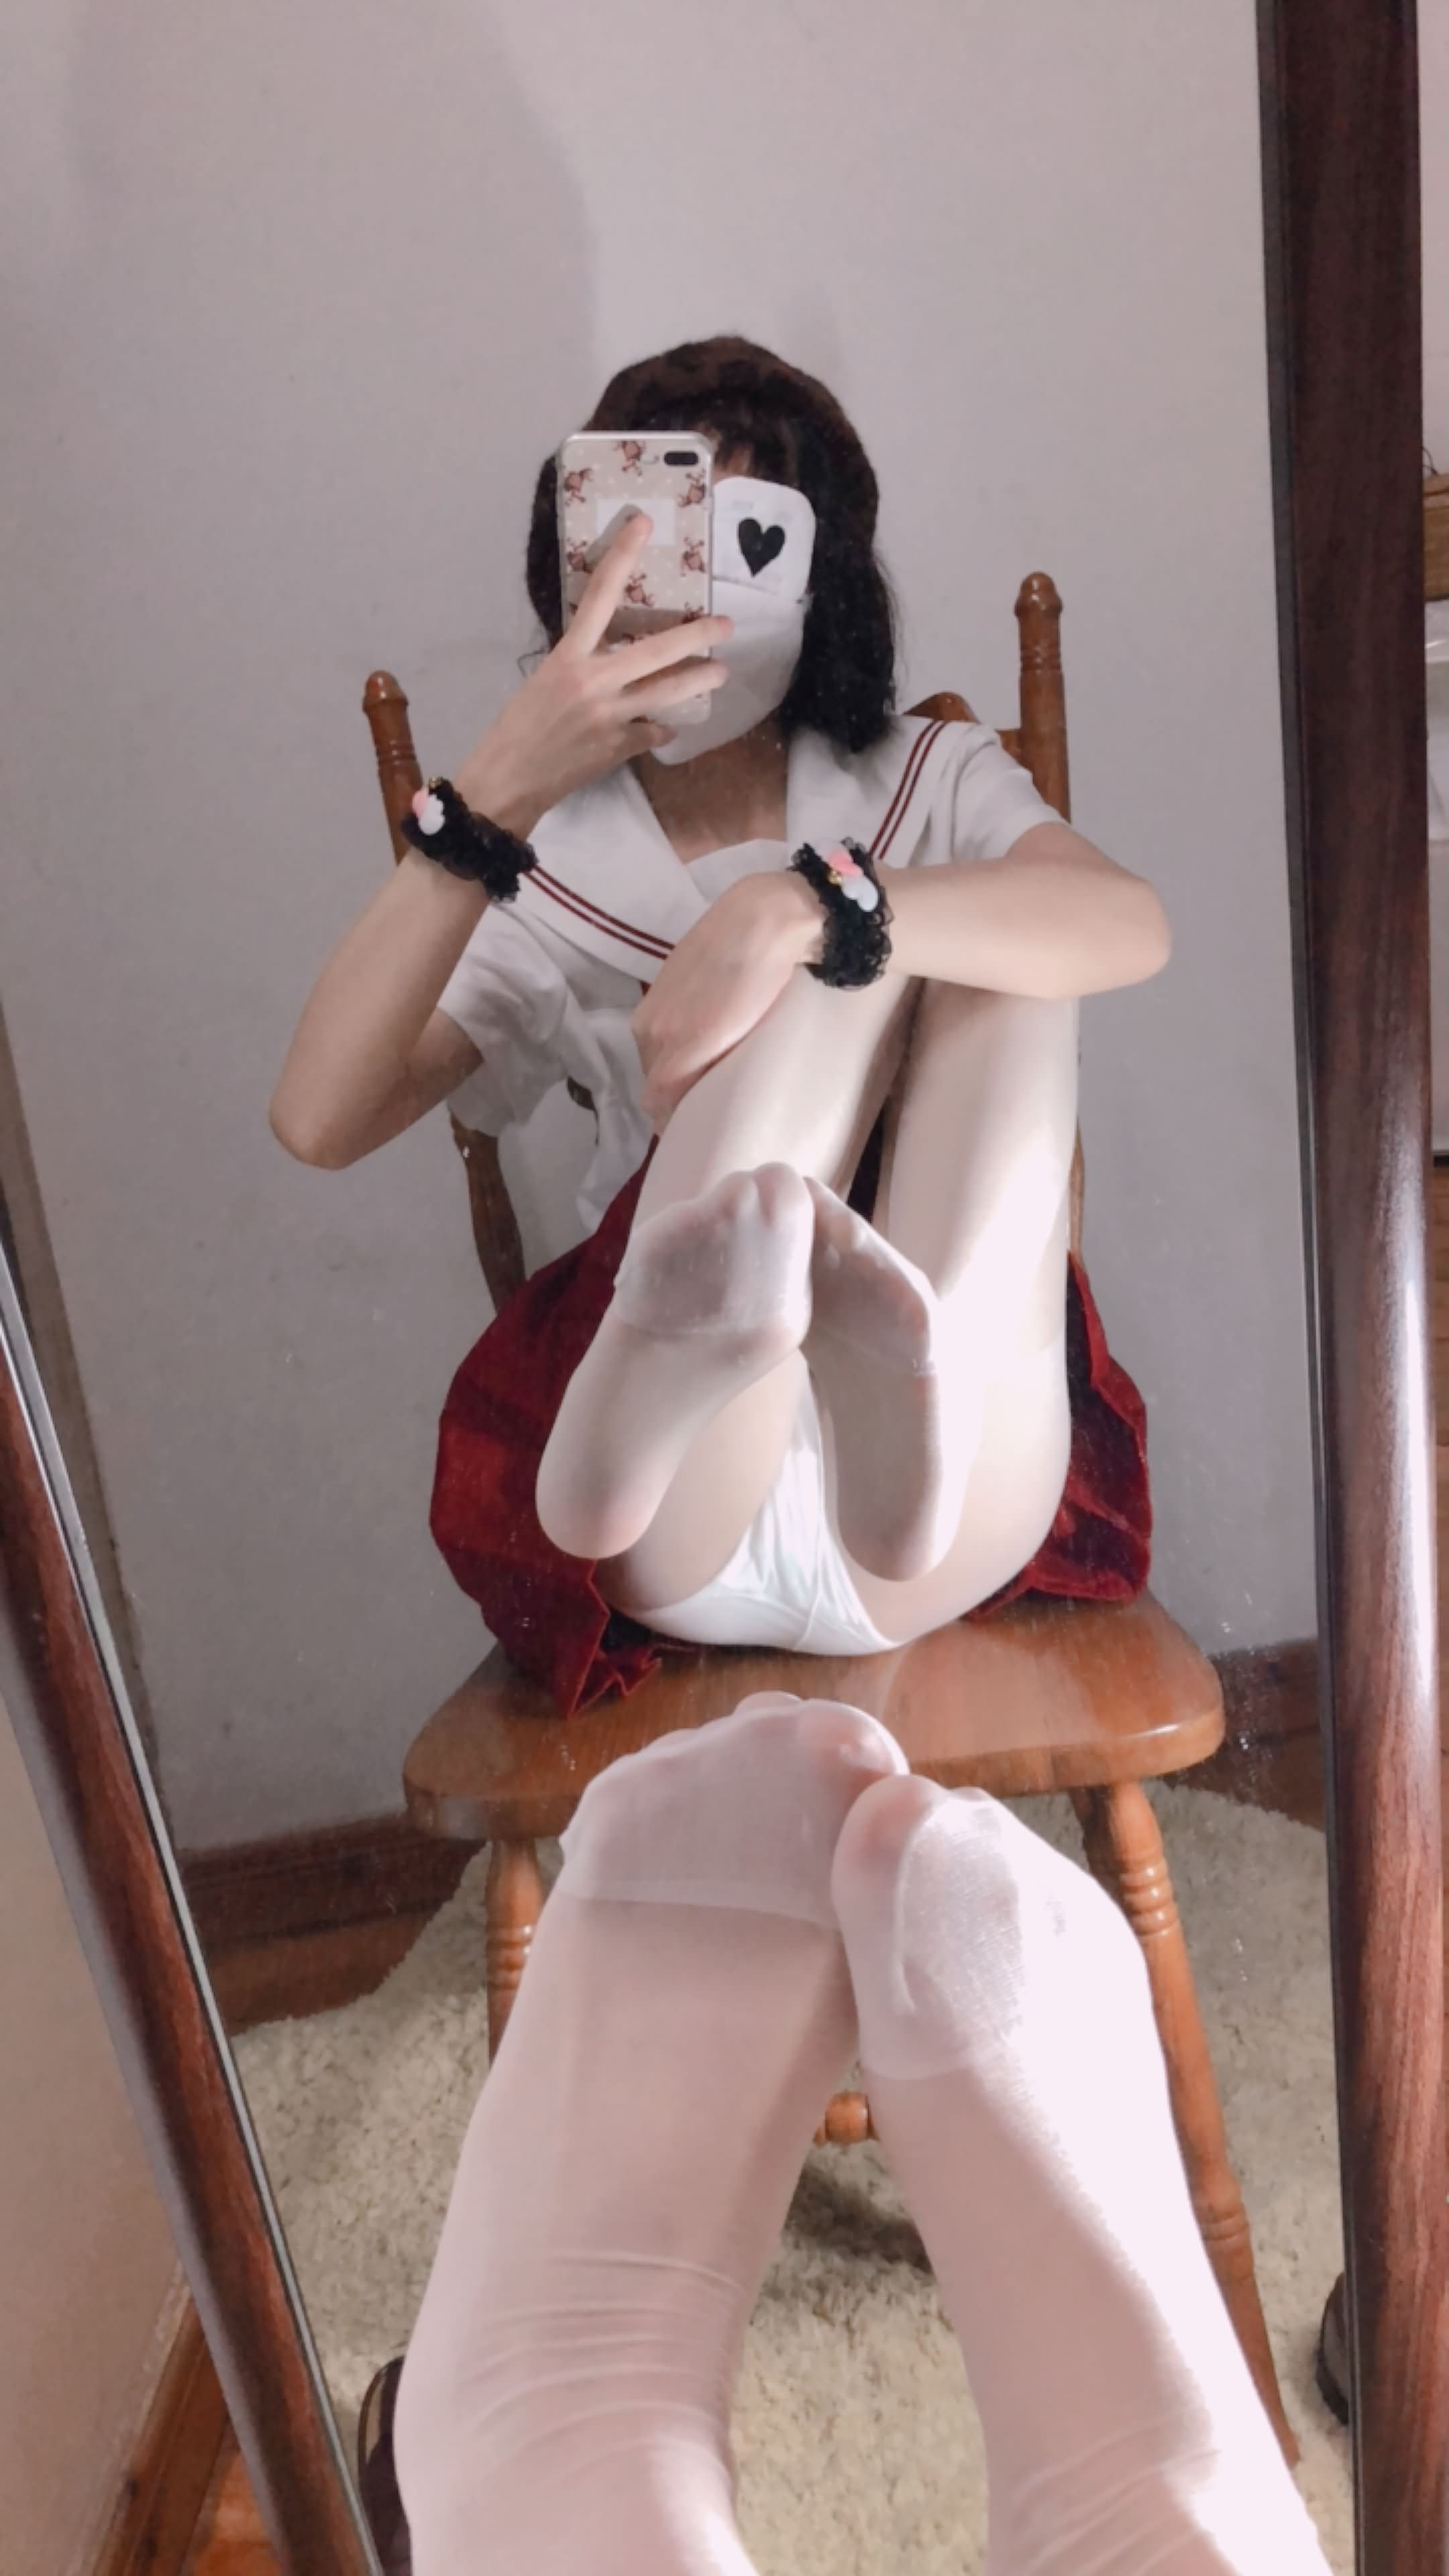 17 - Cosplay red JK uniform white stockings sweet pussy butt 小结巴-红色jk制服白丝 95P